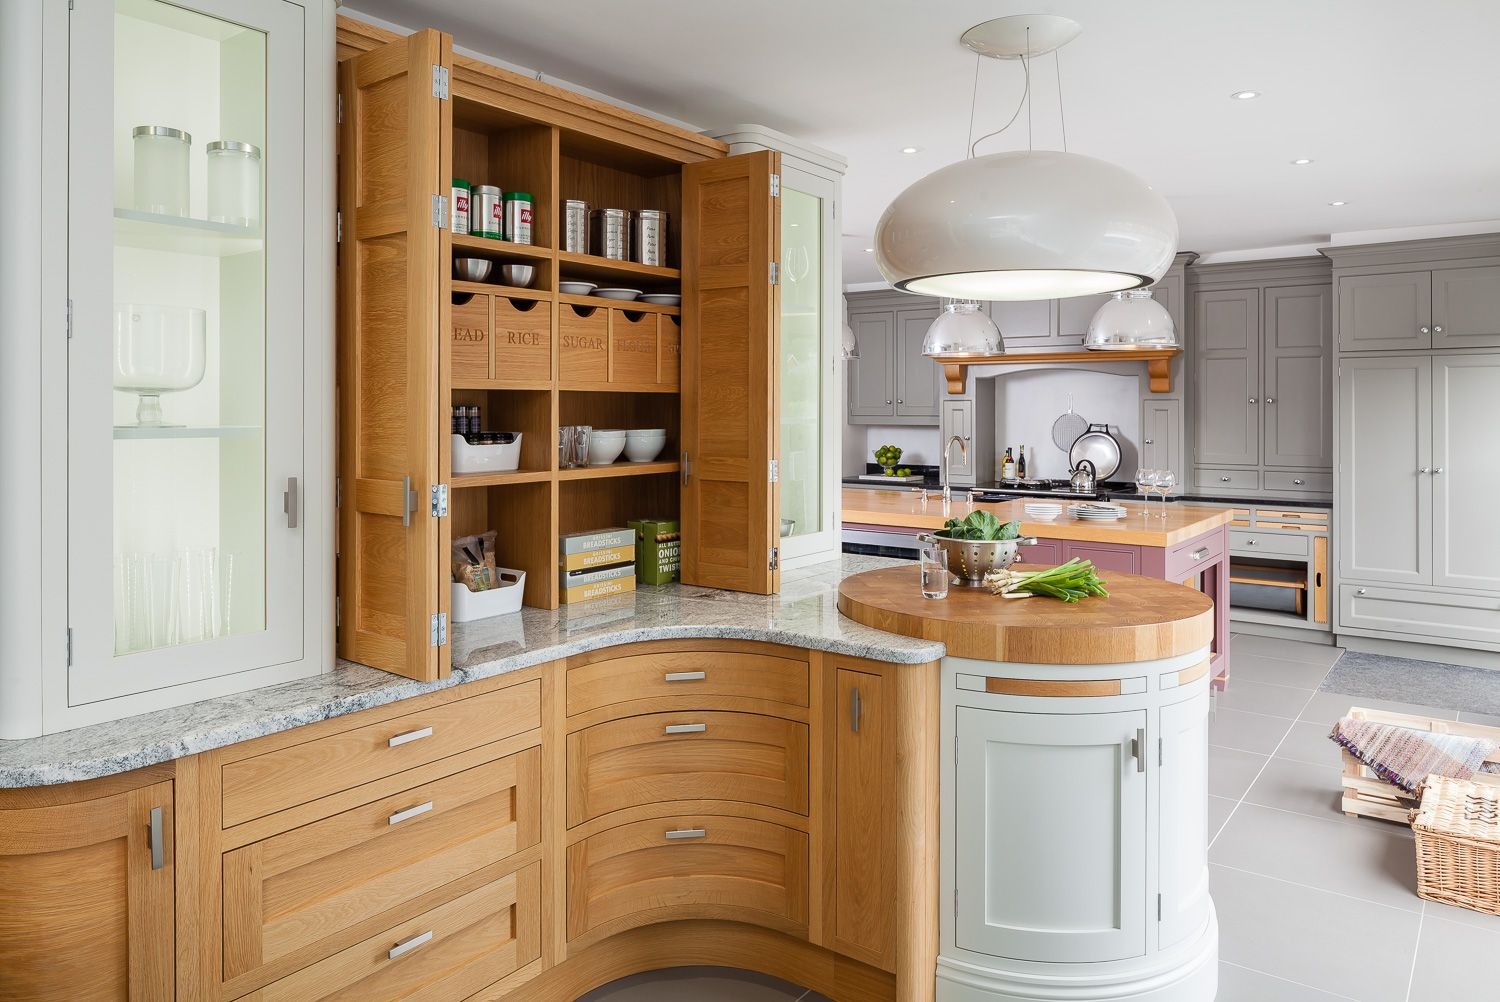 working closely with a selection of the finest kitchen manufacturers